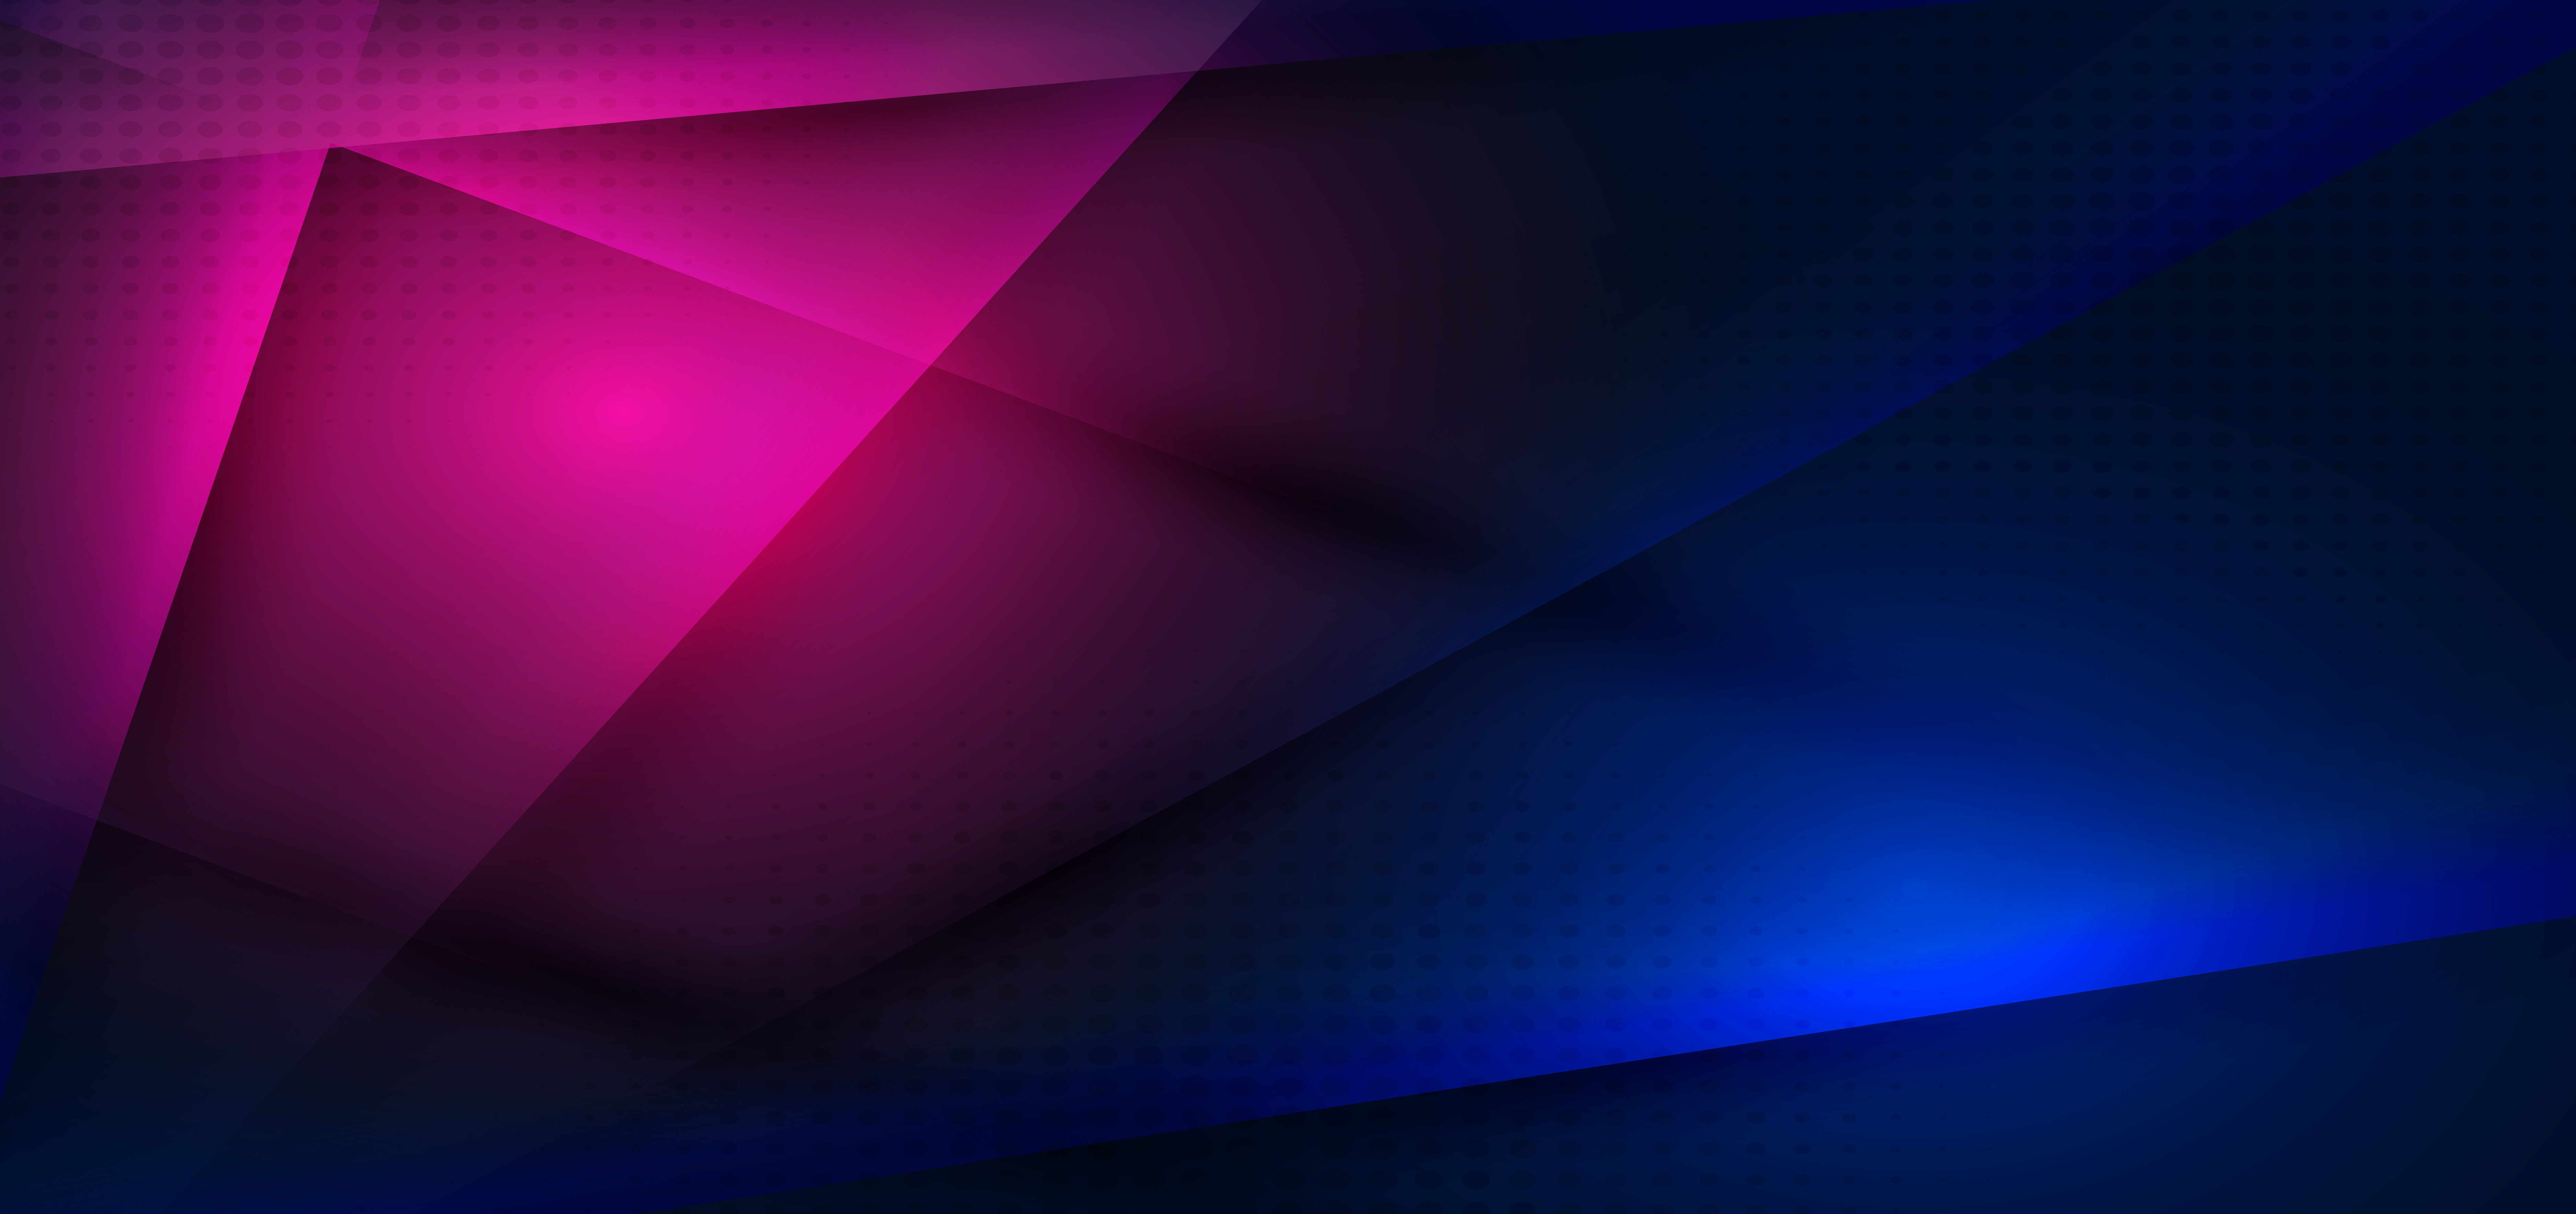 Abstract Technology Concept Triangle Blue And Pink Dark Background. 1872840  Vector Art At Vecteezy